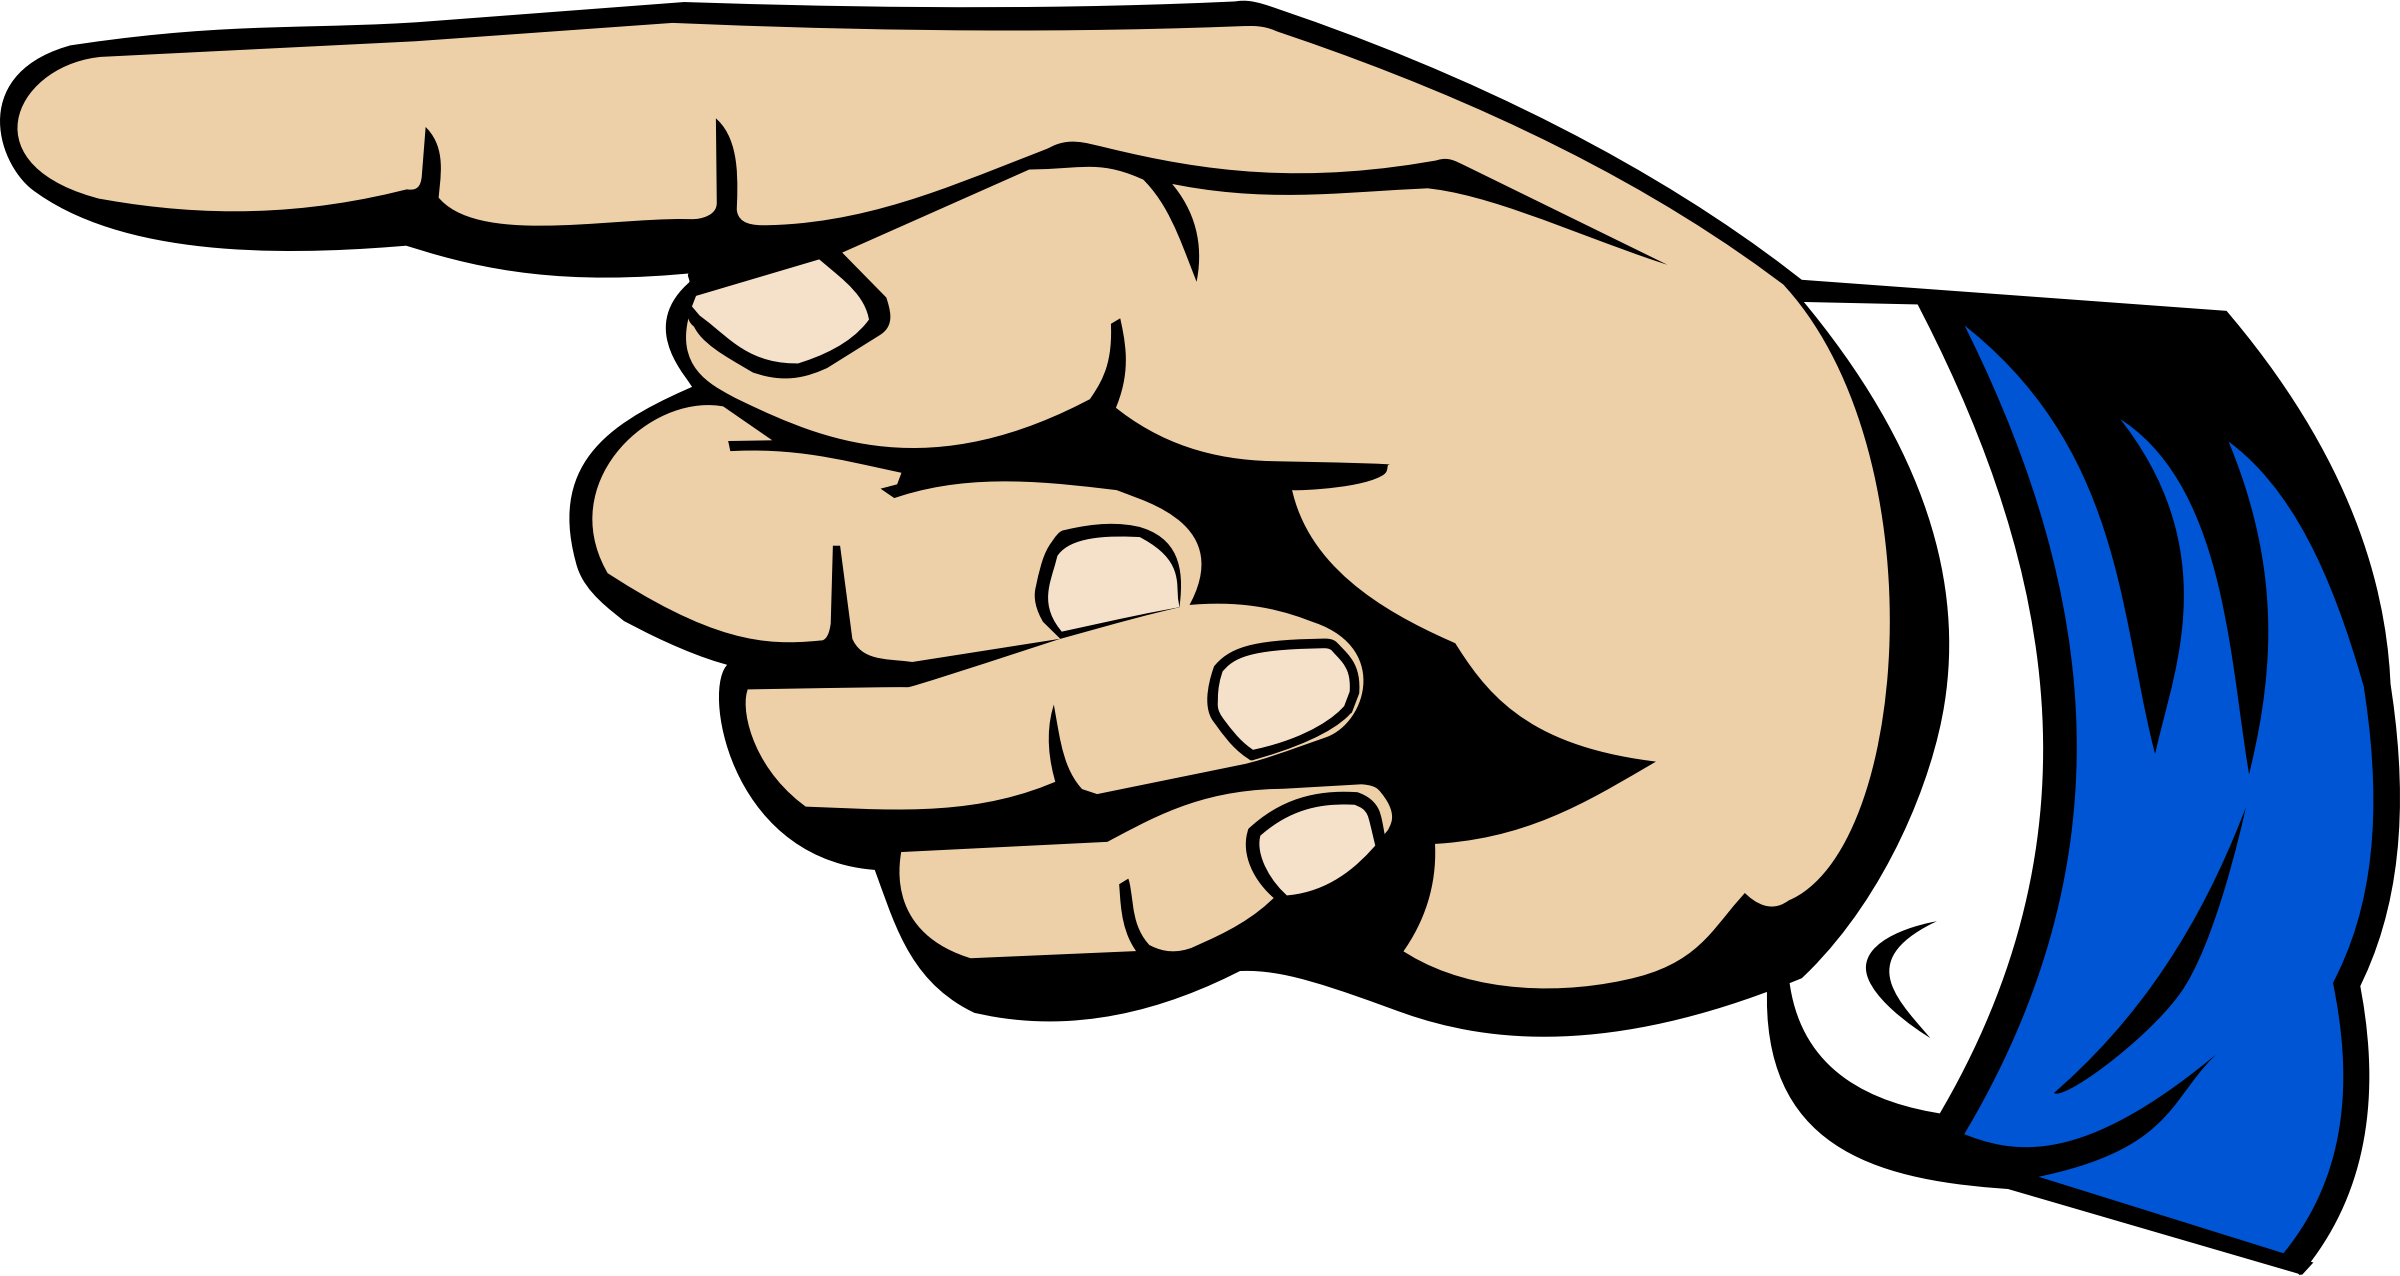 Pointing finger big image. Thumb clipart anytime